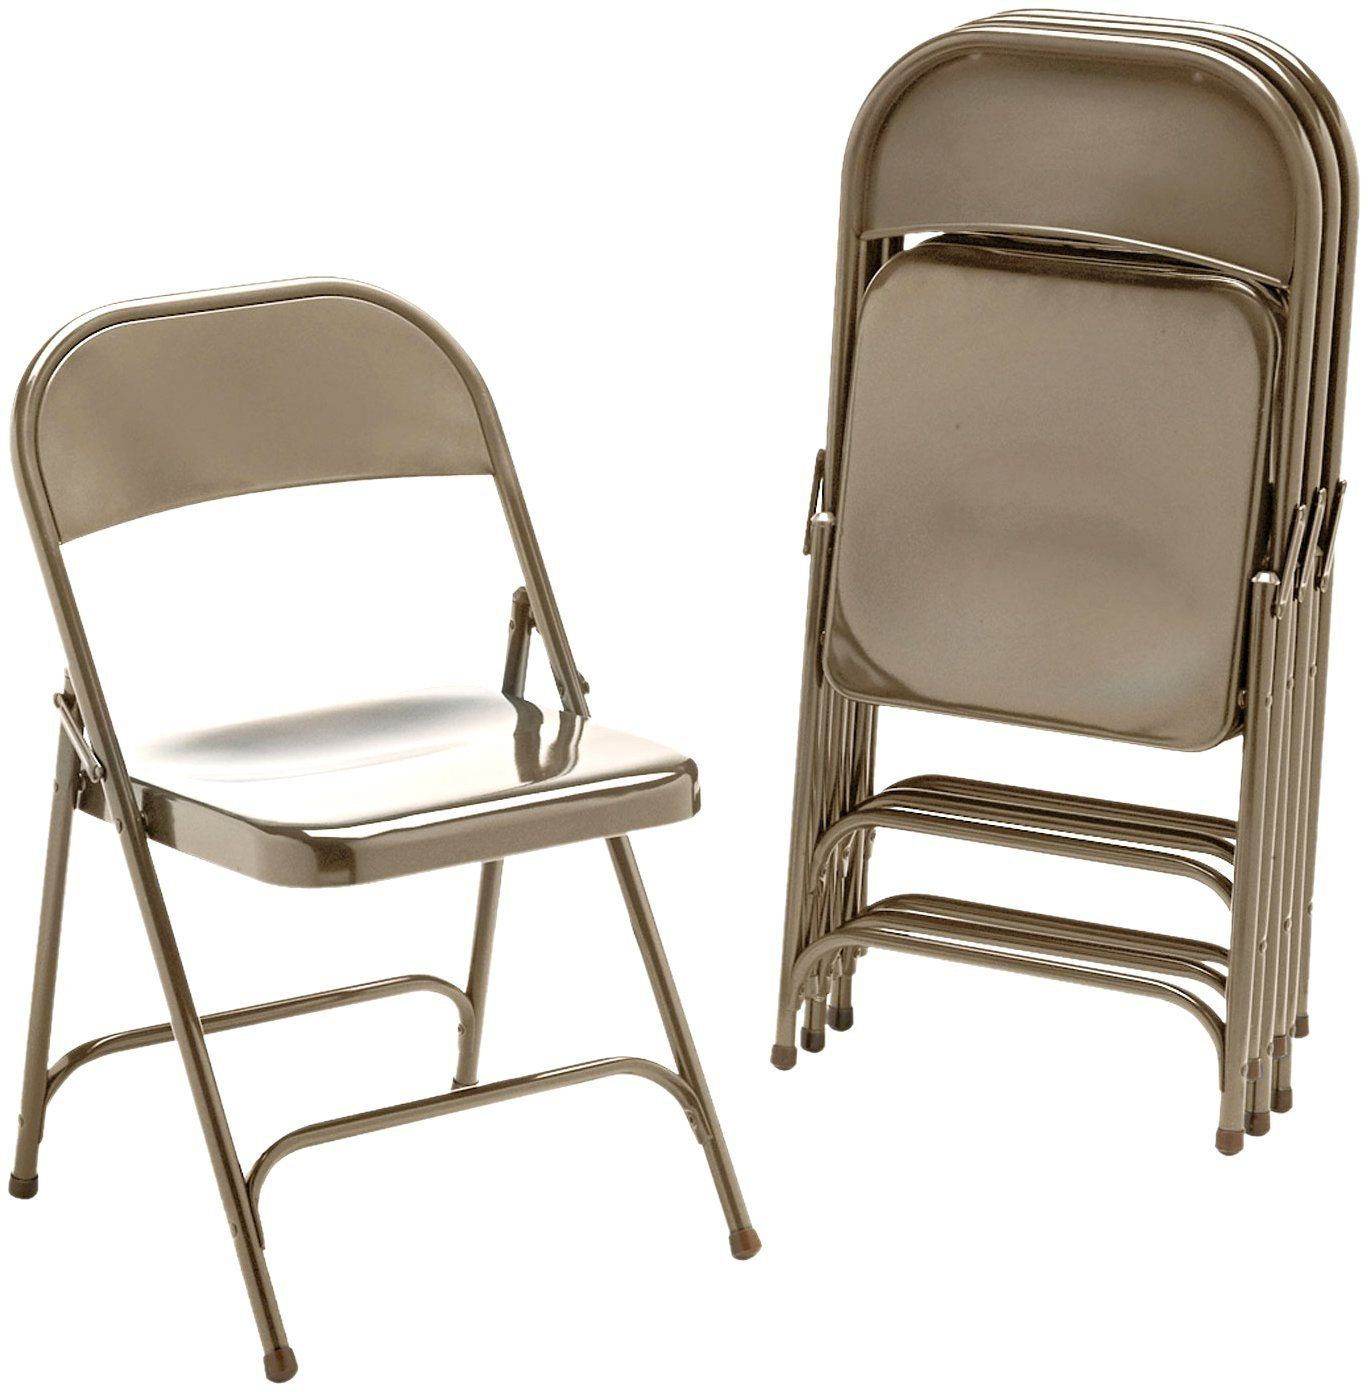 Folding Chair For Adorable Metal Folding Deck Chairs Folding